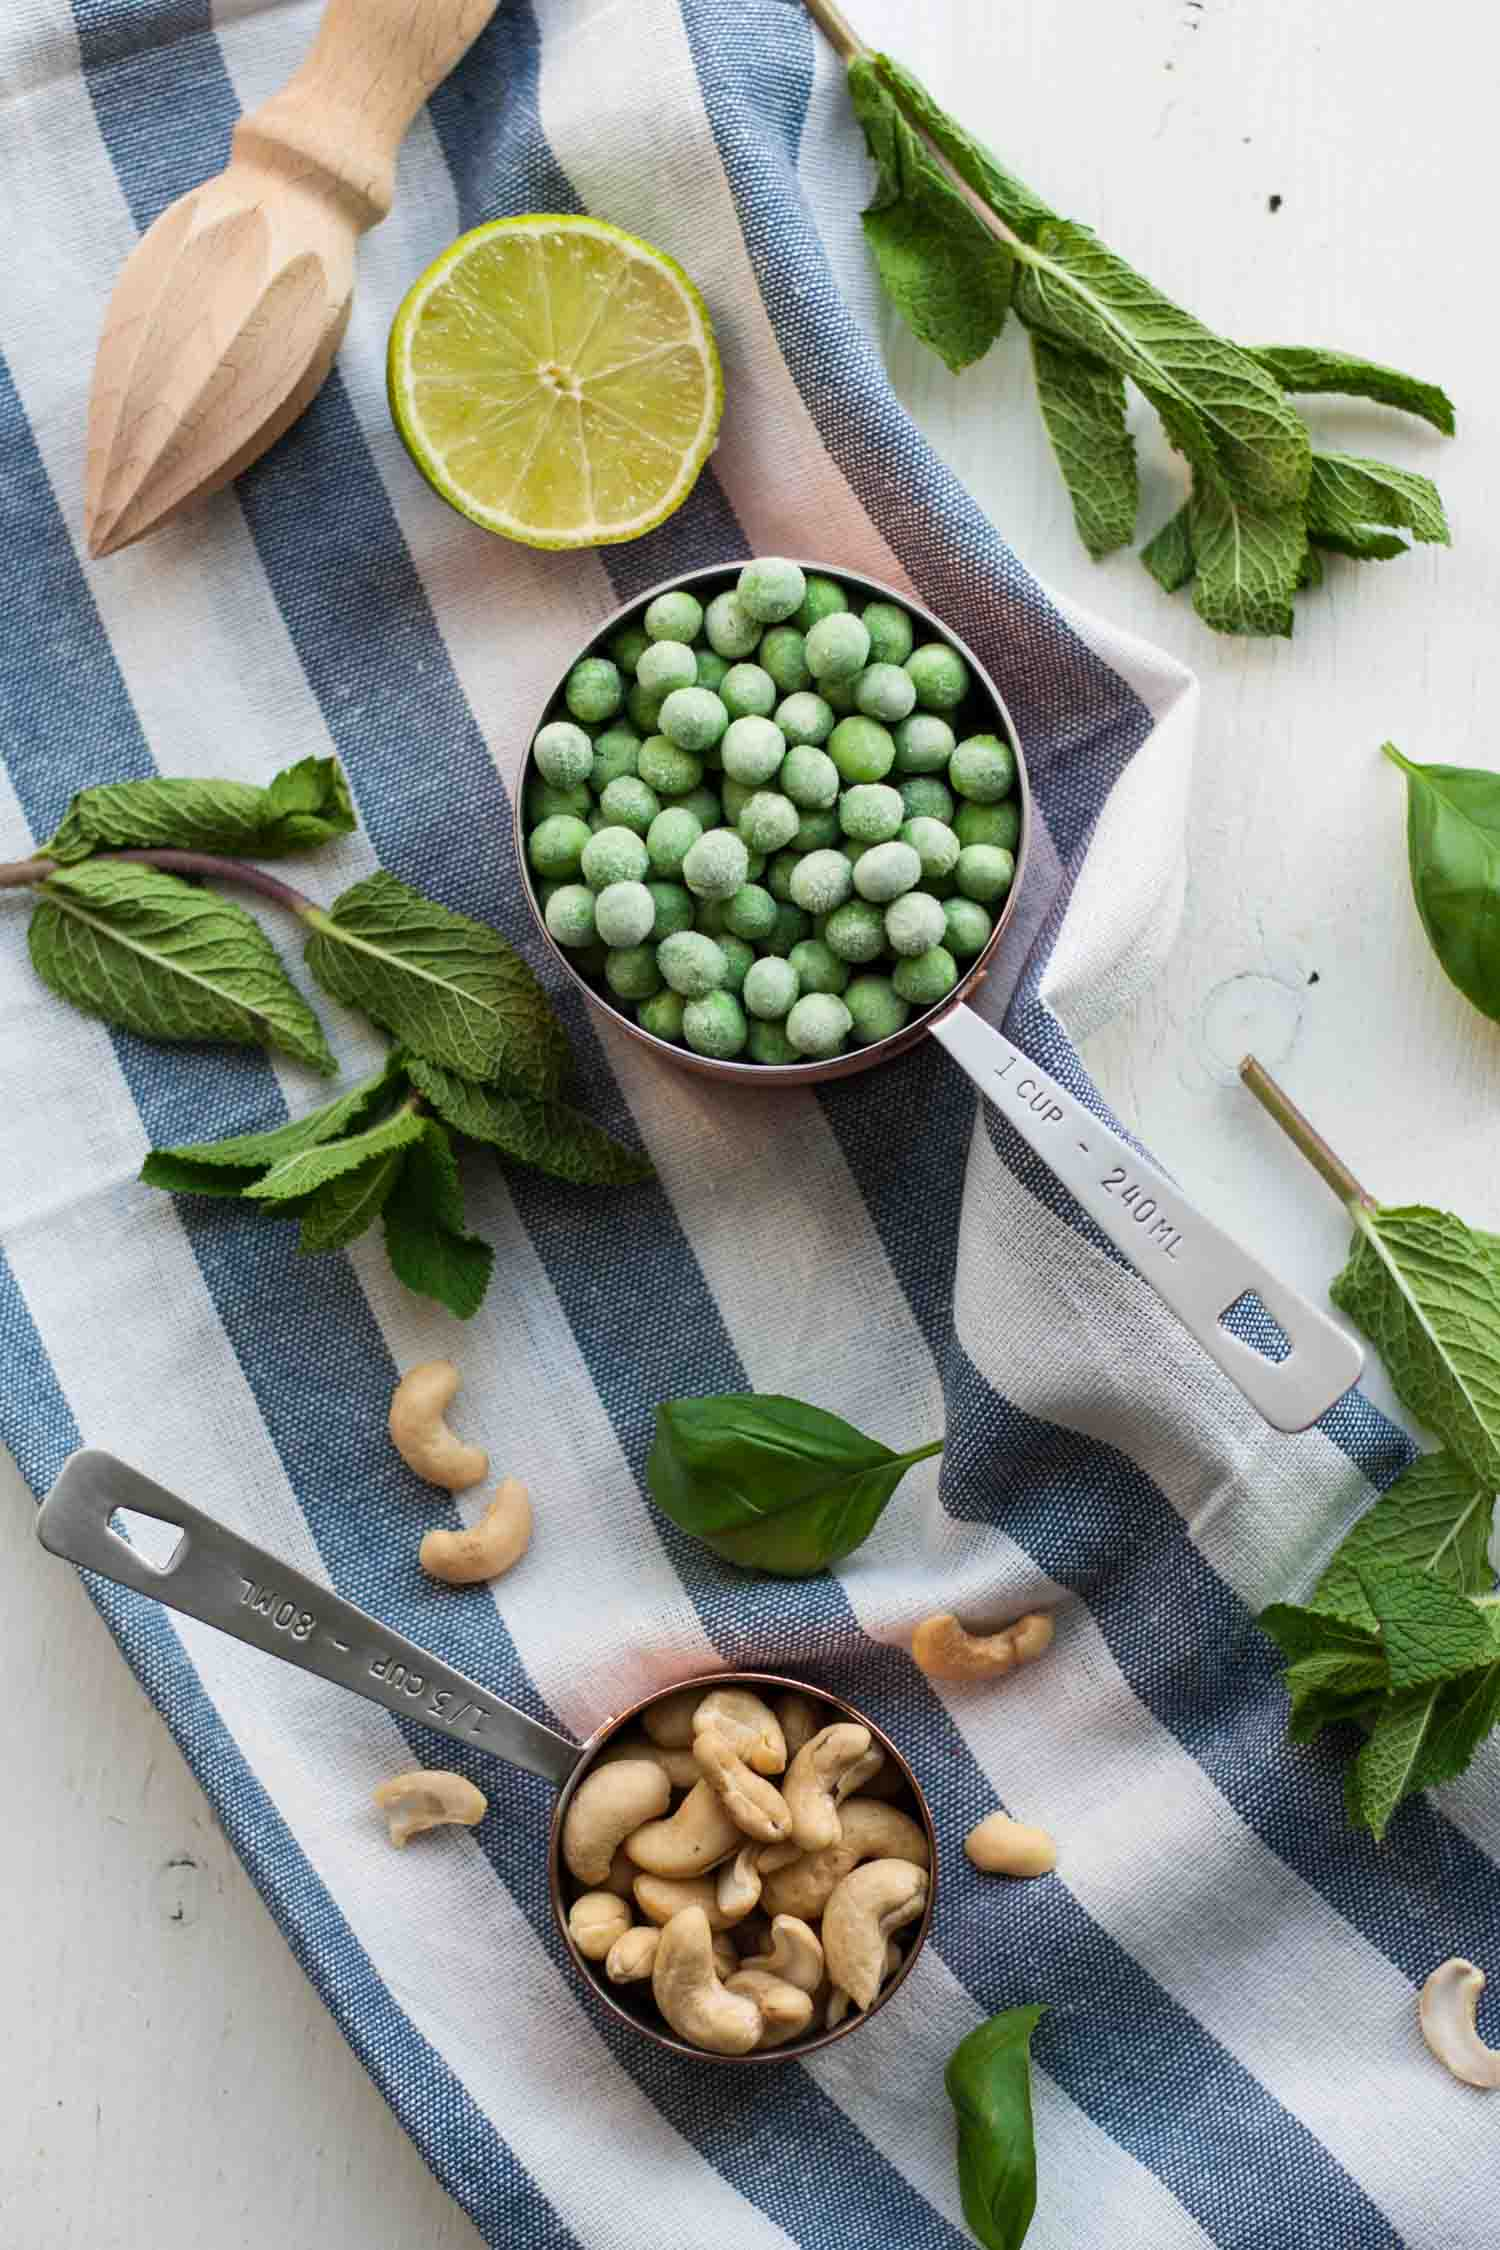 5 Minute Vibrant Spring Sauce - this delicious green sauce recipe has just a few ingredients - peas, cashews, basil, mint, lime - and tastes like you've bottled spring! Ready in 5 minutes flat! | eatloveeats.com